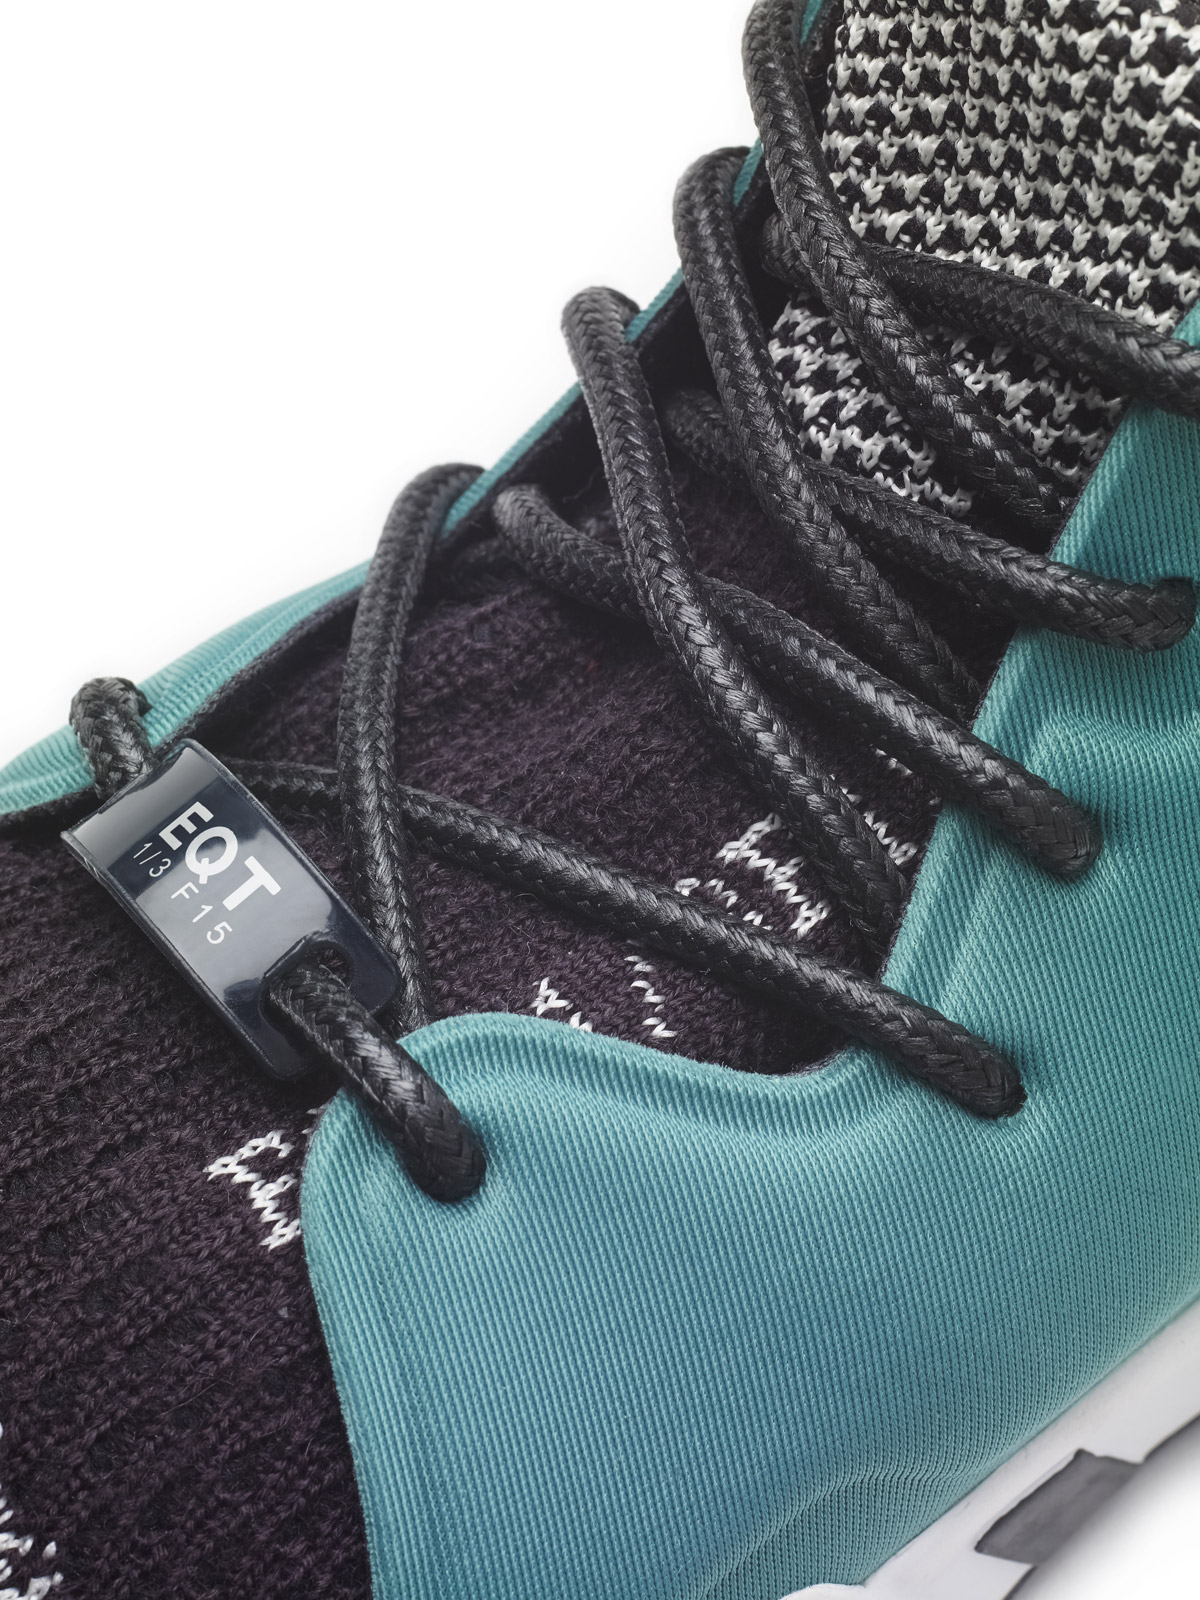 adidas Originals Statement EQT #3F15 Collection-8